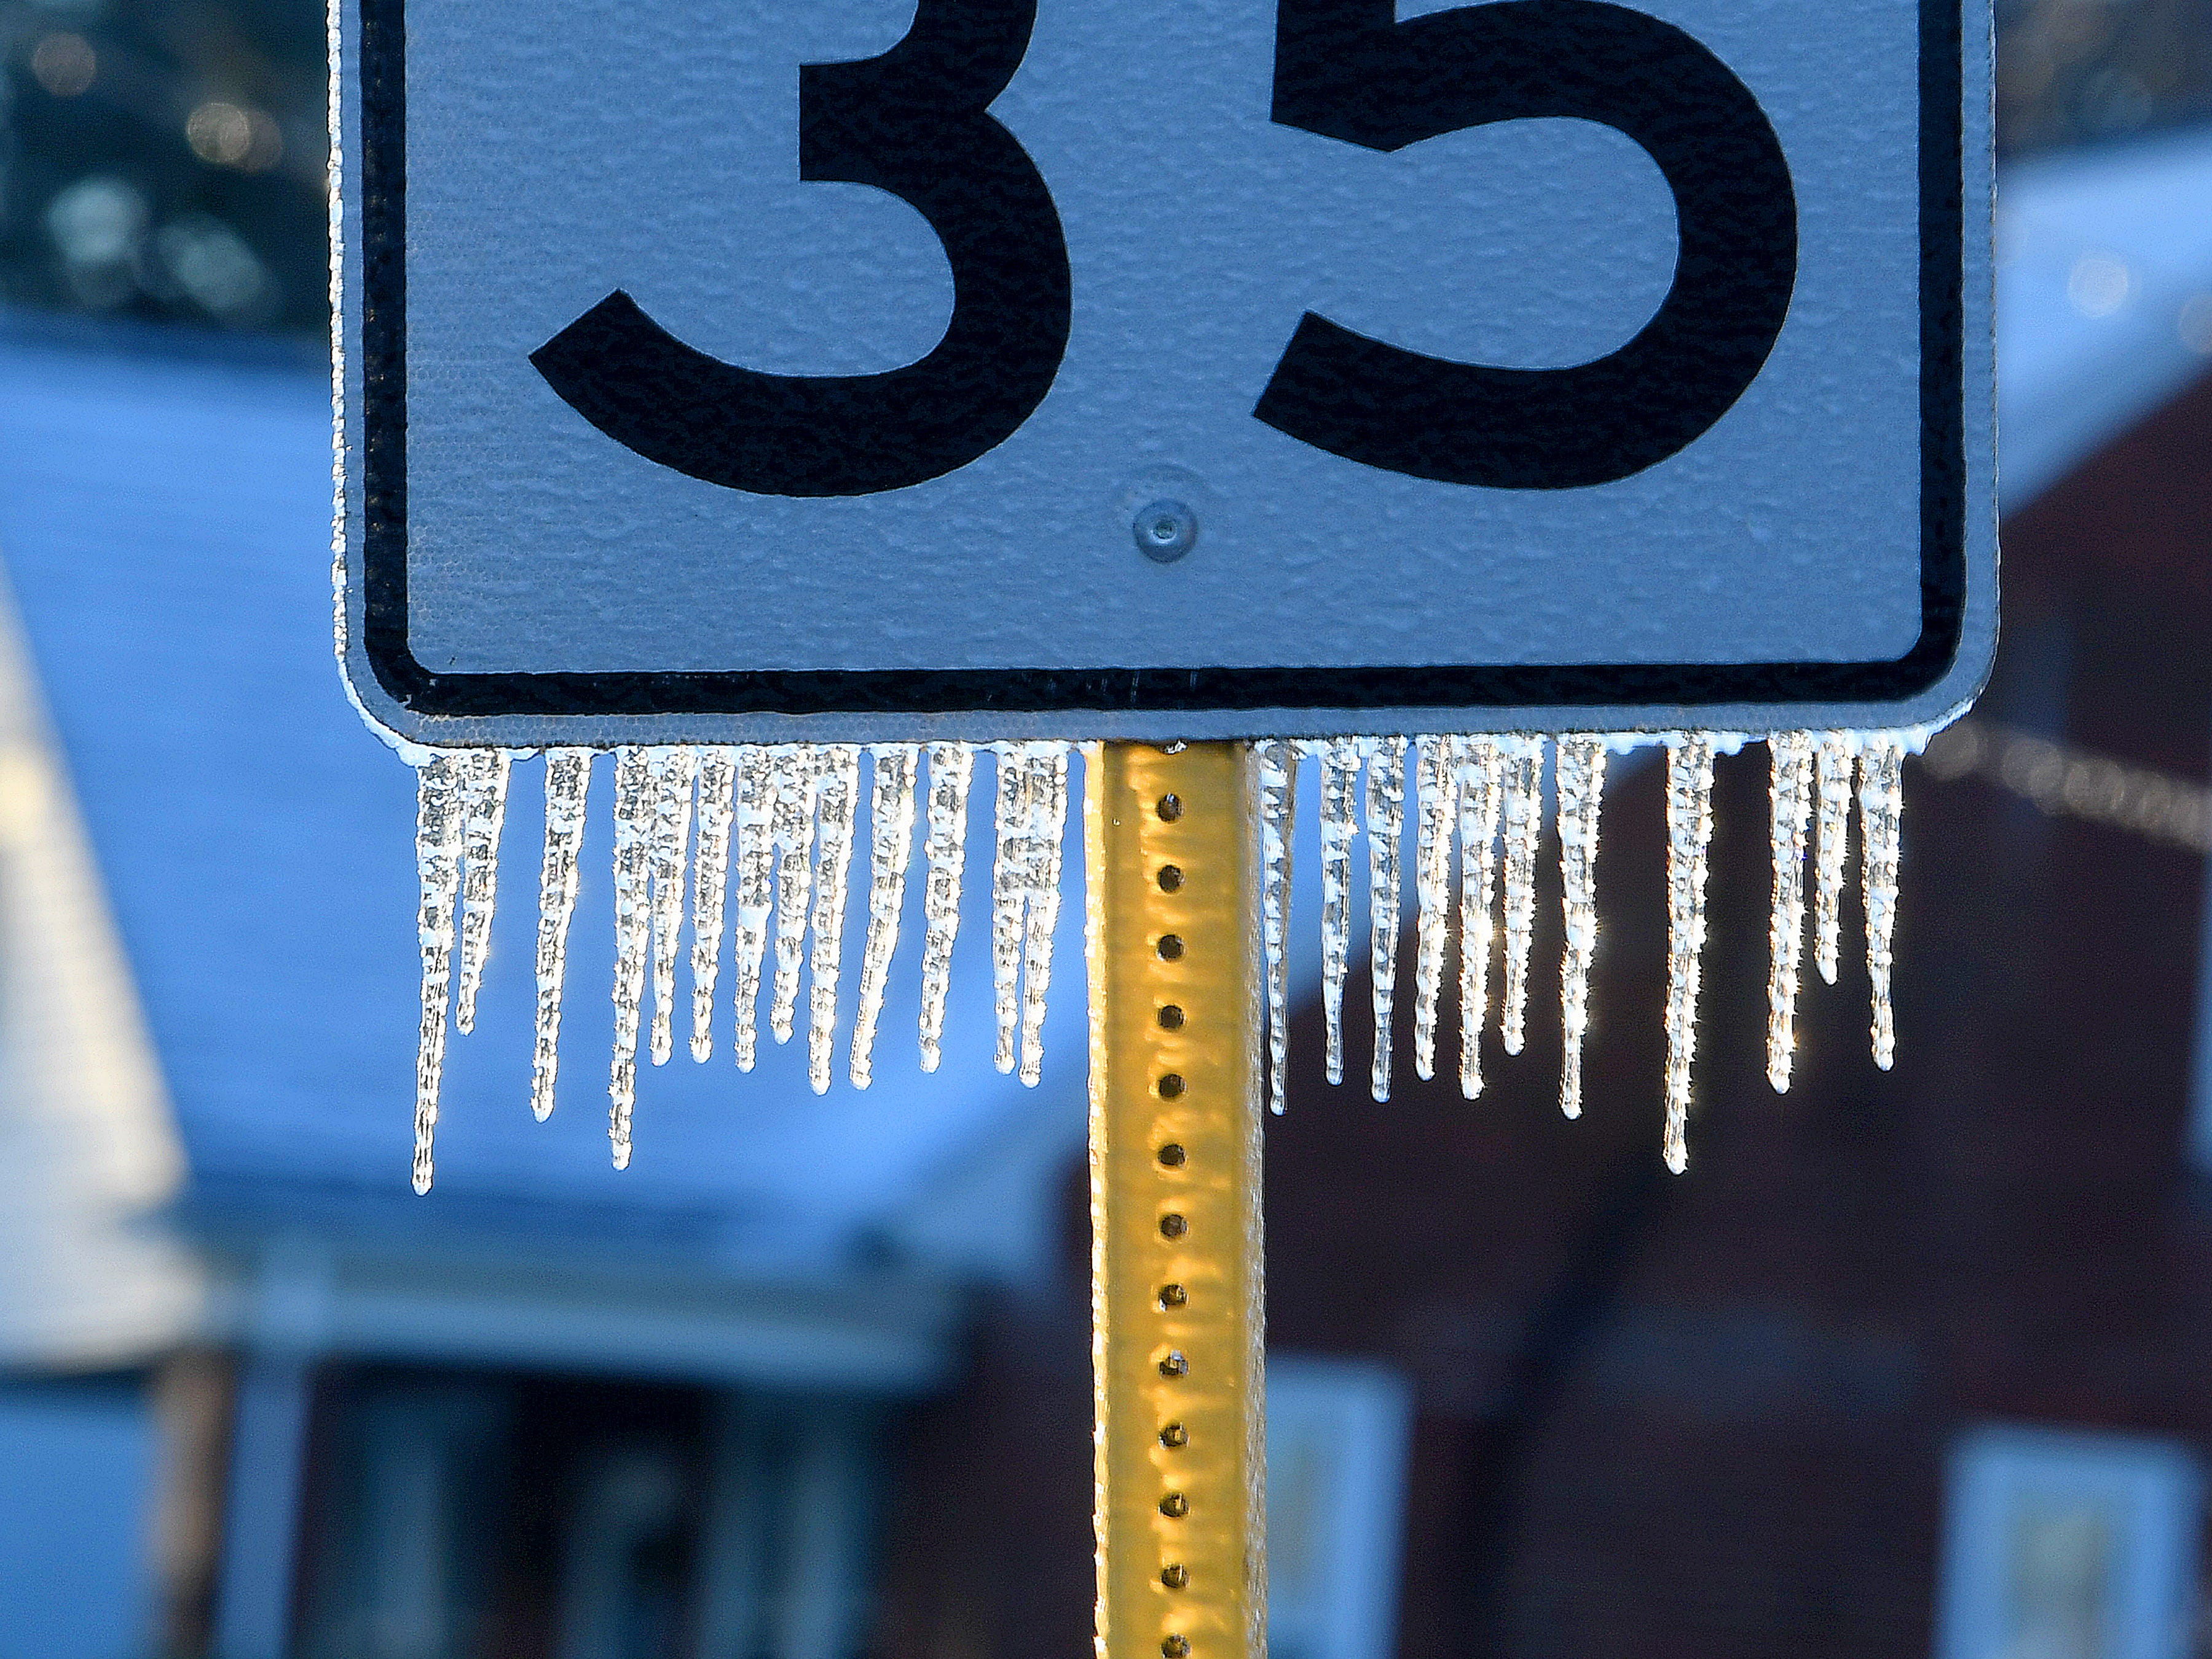 Ice covers and hangs from a speed limit sign along Barterbrook Road on an ice-covered Friday morning, Nov. 16, 2018.